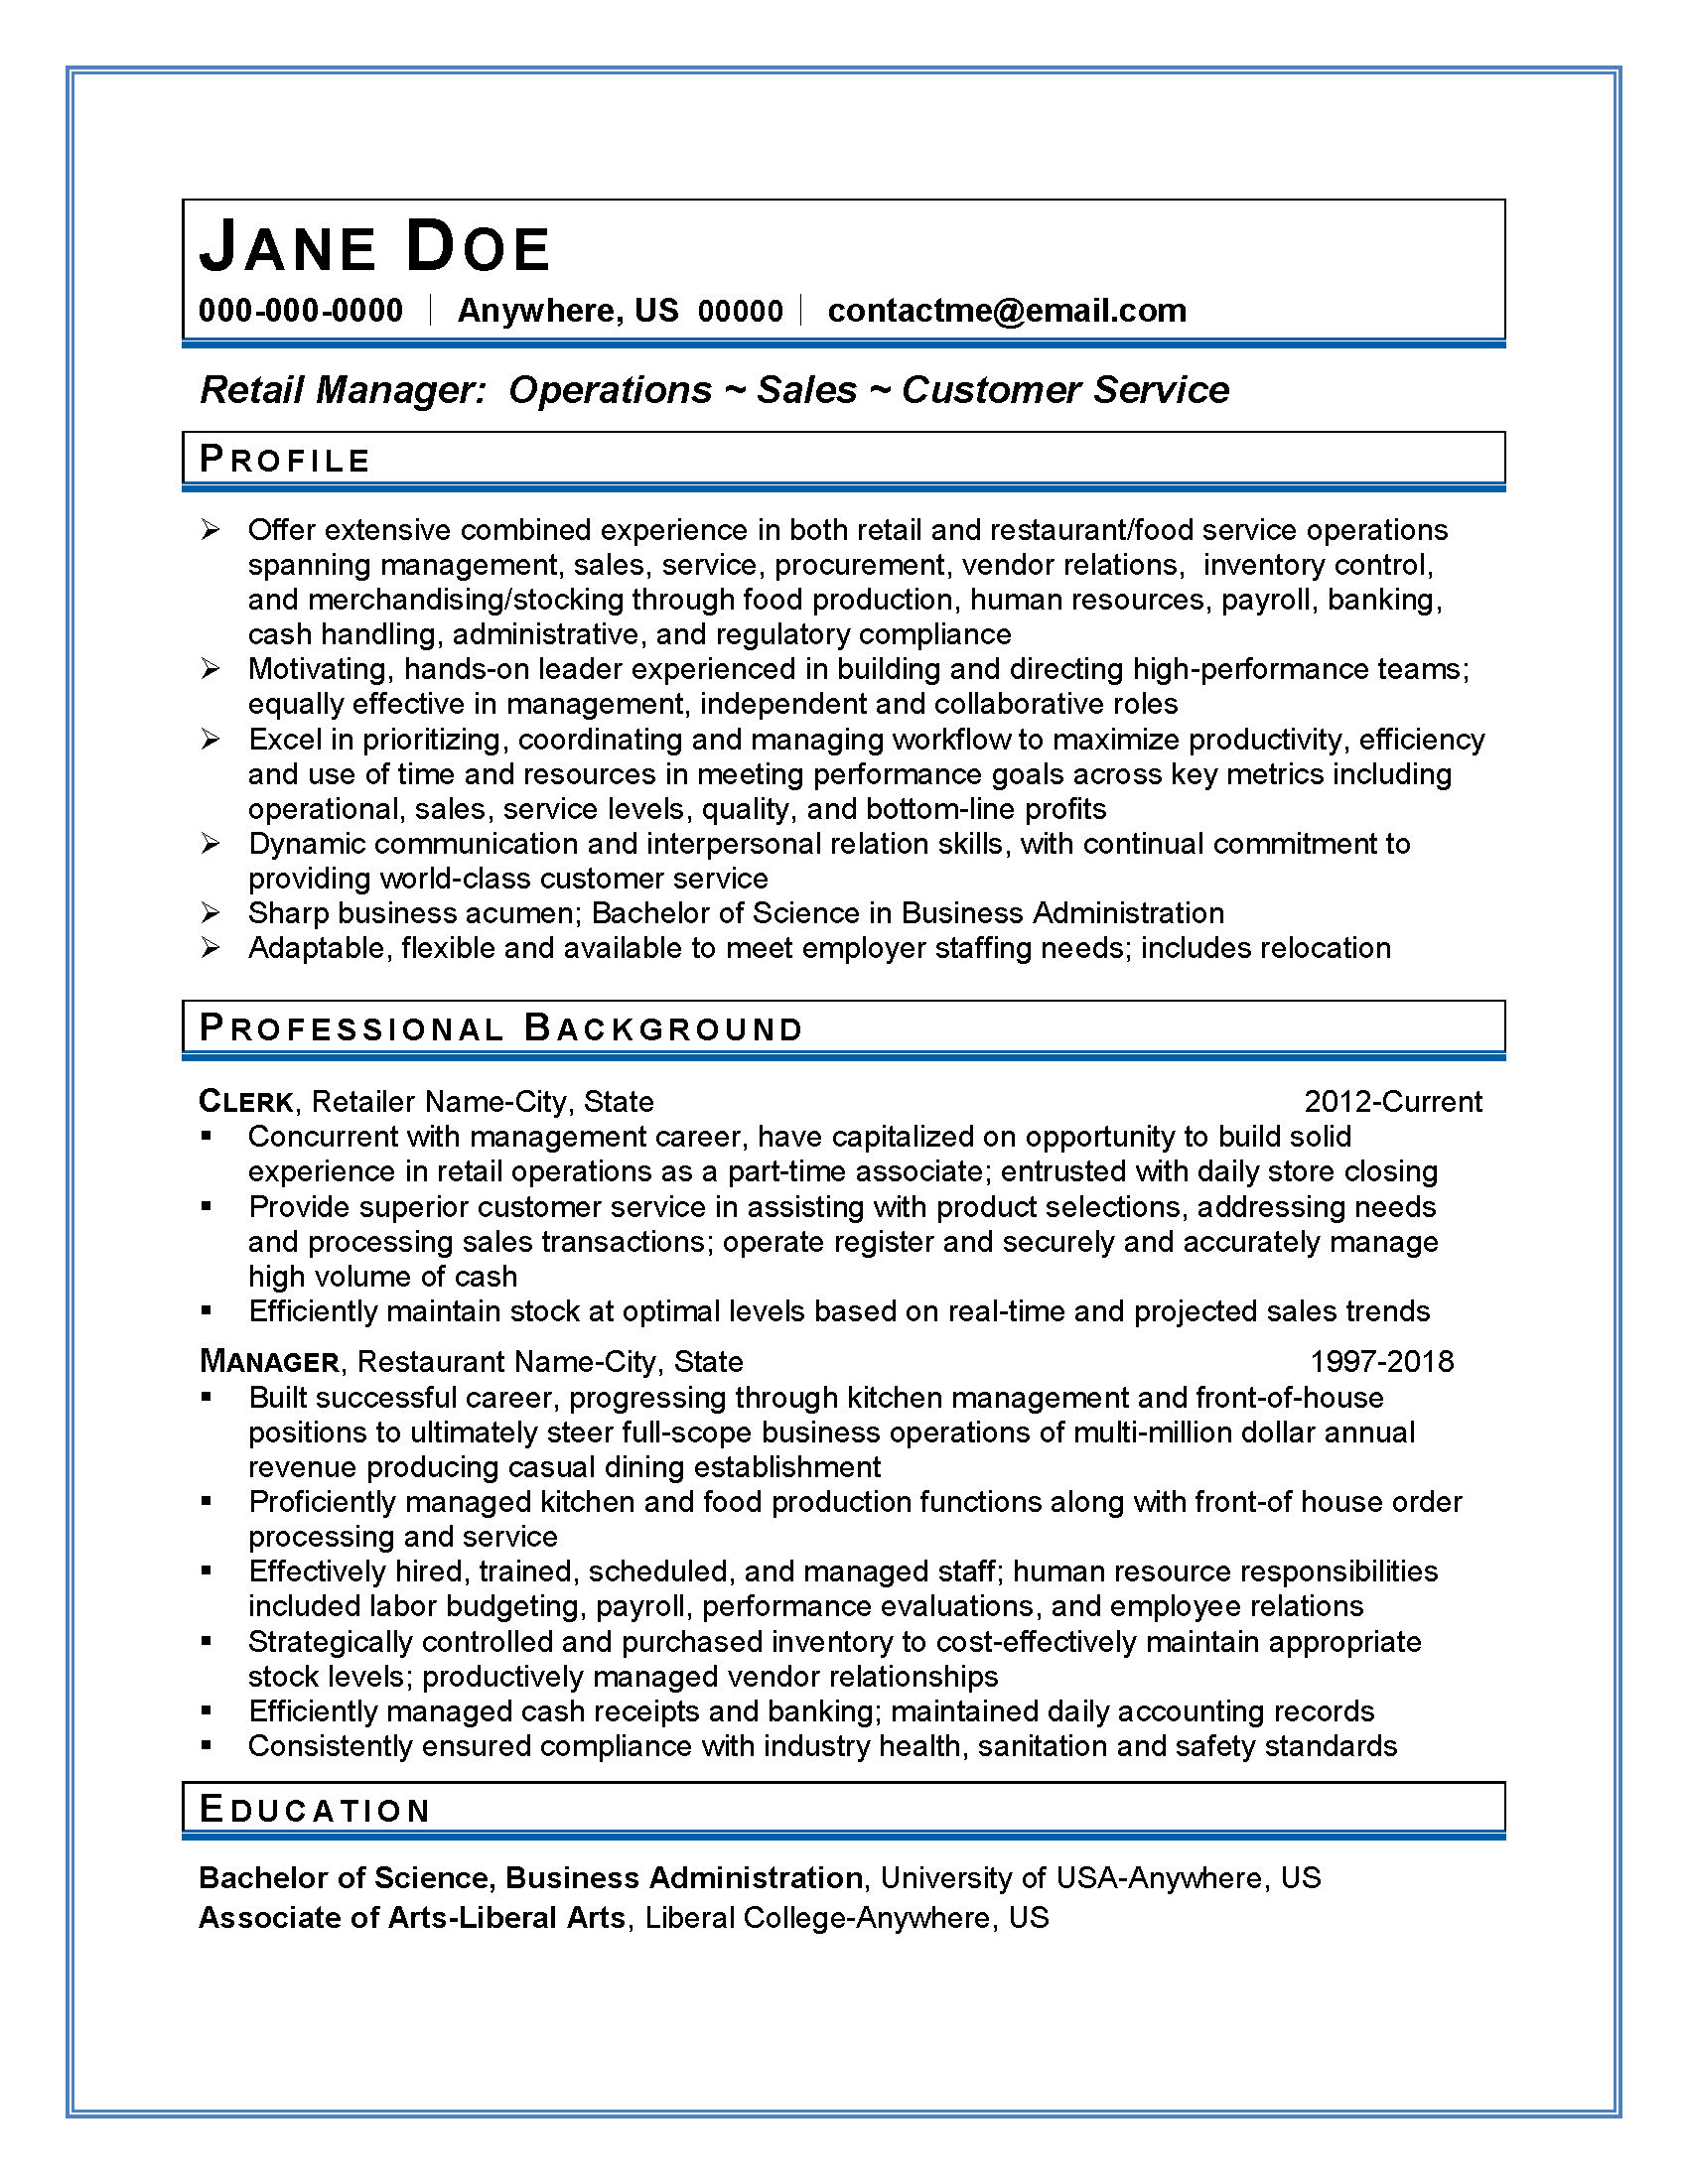 Free resume samples resume writing group applicant tracking system ats resume thecheapjerseys Choice Image